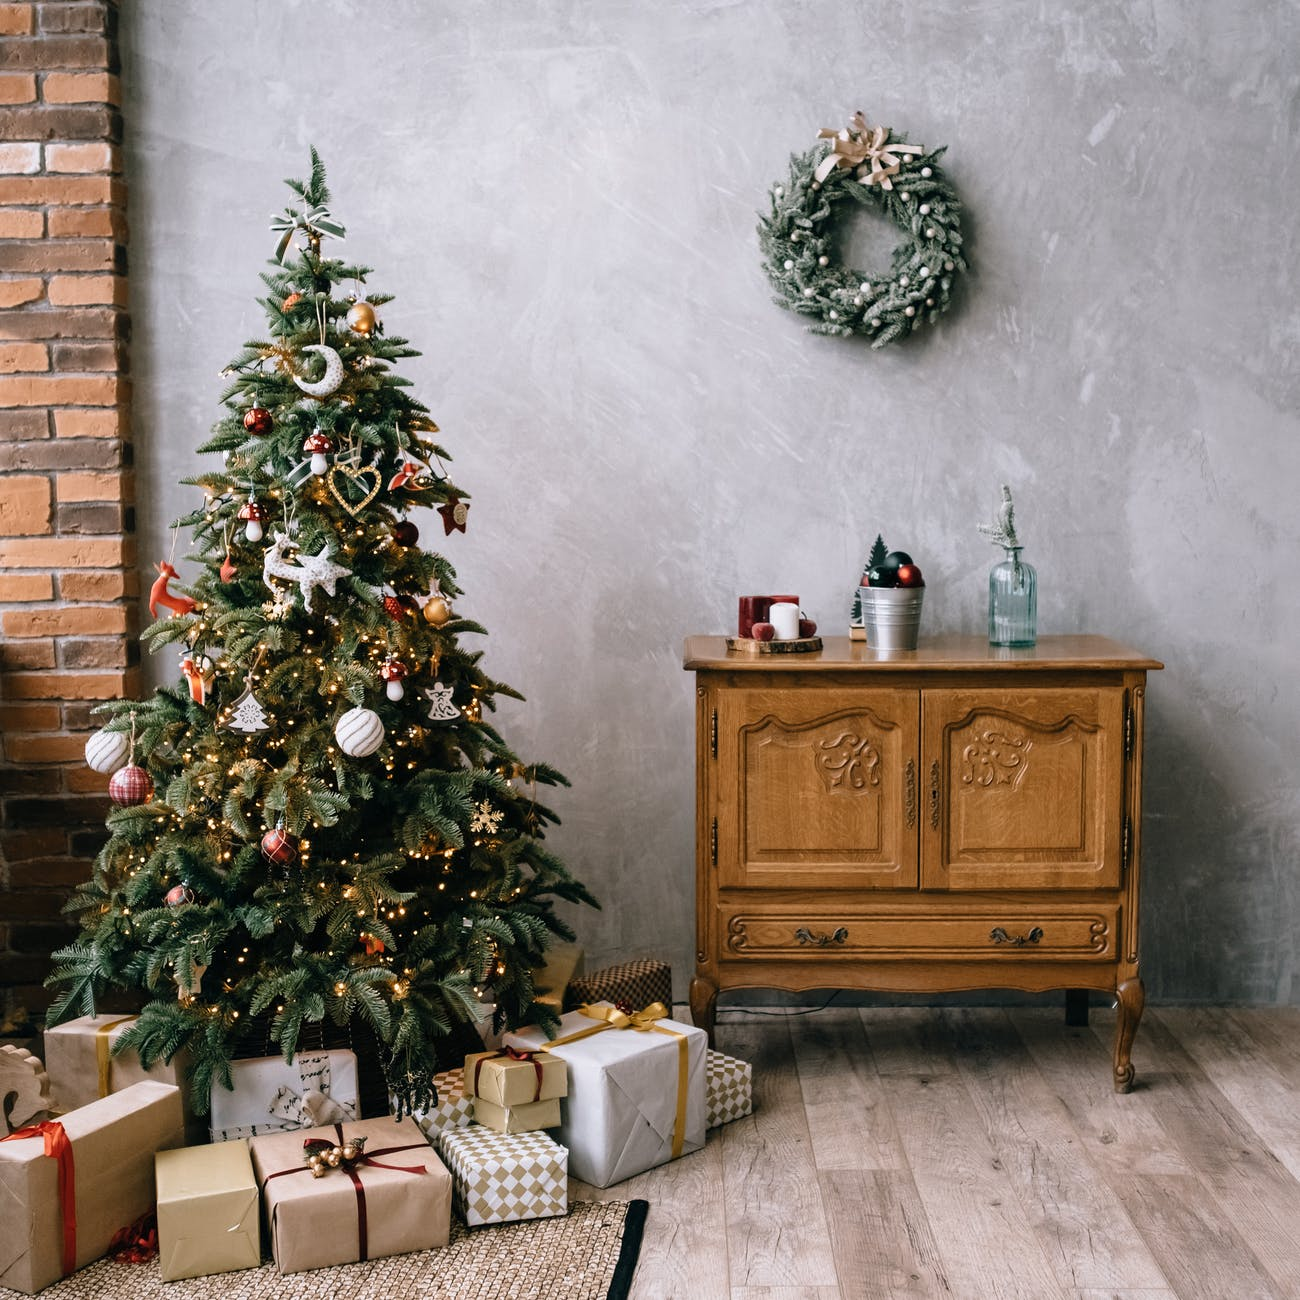 cozy room with christmas tree and decorations cheap gifts for travellers